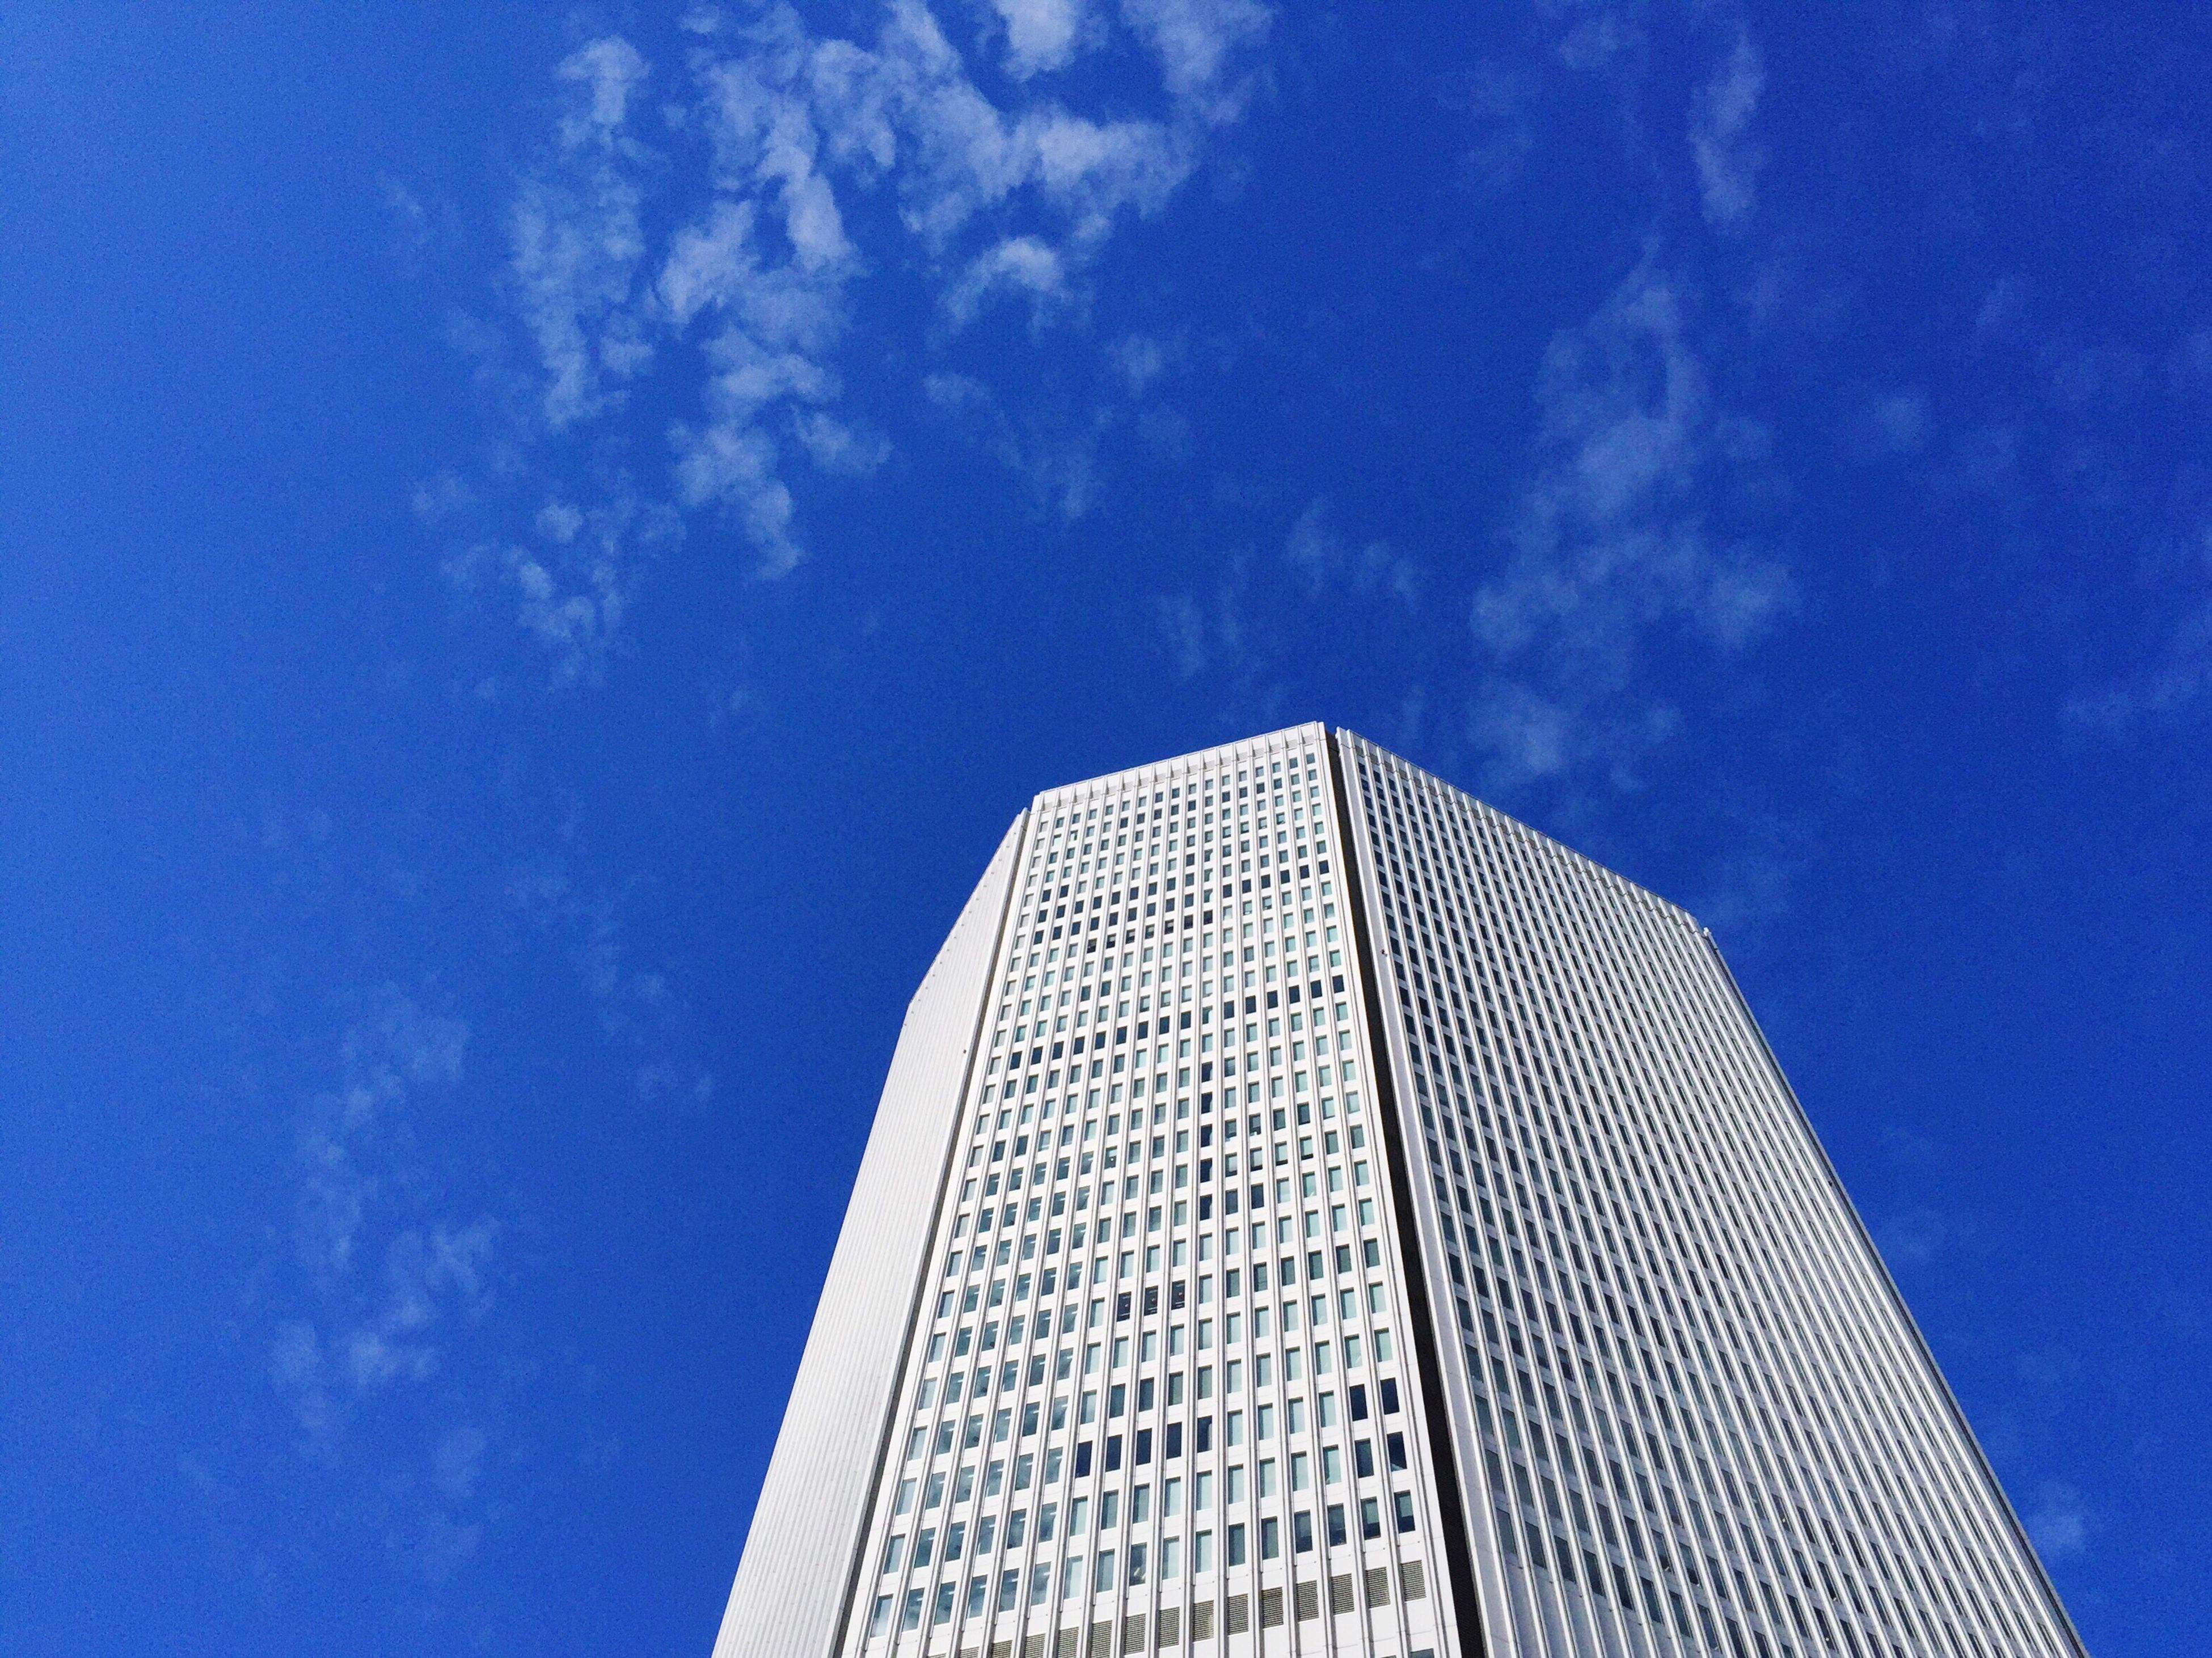 architecture, low angle view, built structure, building exterior, sky, blue, no people, city, skyscraper, outdoors, growth, day, cloud - sky, nature